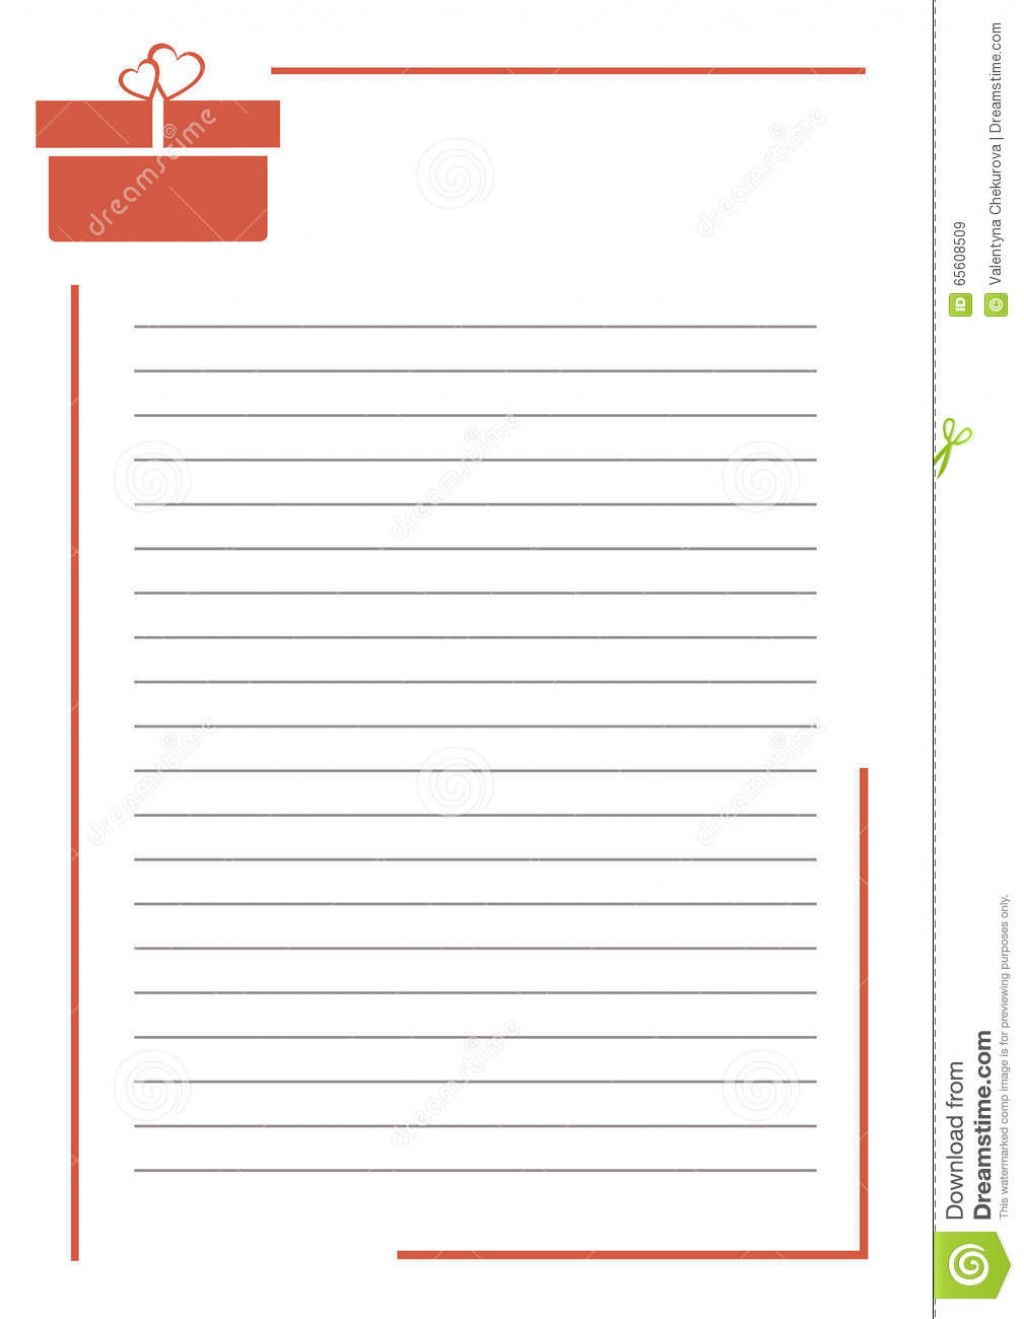 005 Note Cards For Research Paper Vector Blank Letter Greeting Card White Form Red Gift Box Lines Border Format Size Rare Formatting Notecards Papers Mla Digital Large